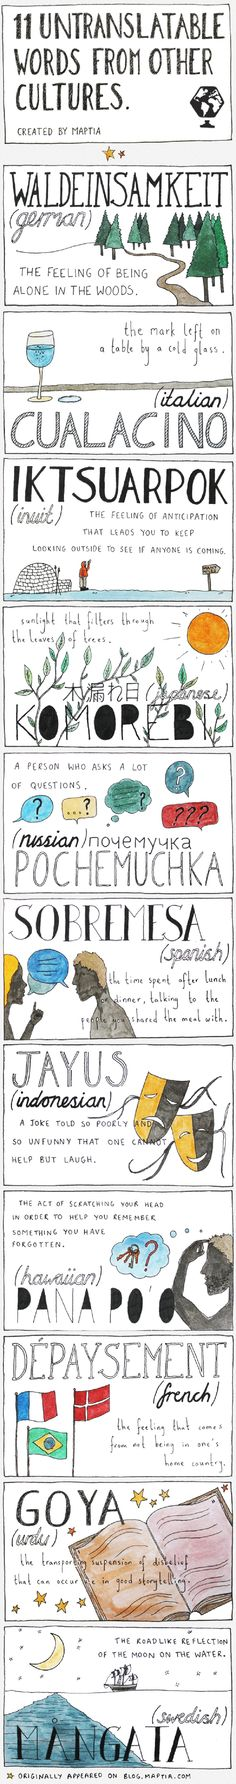 The World's Most Fascinating And Untranslatable Words